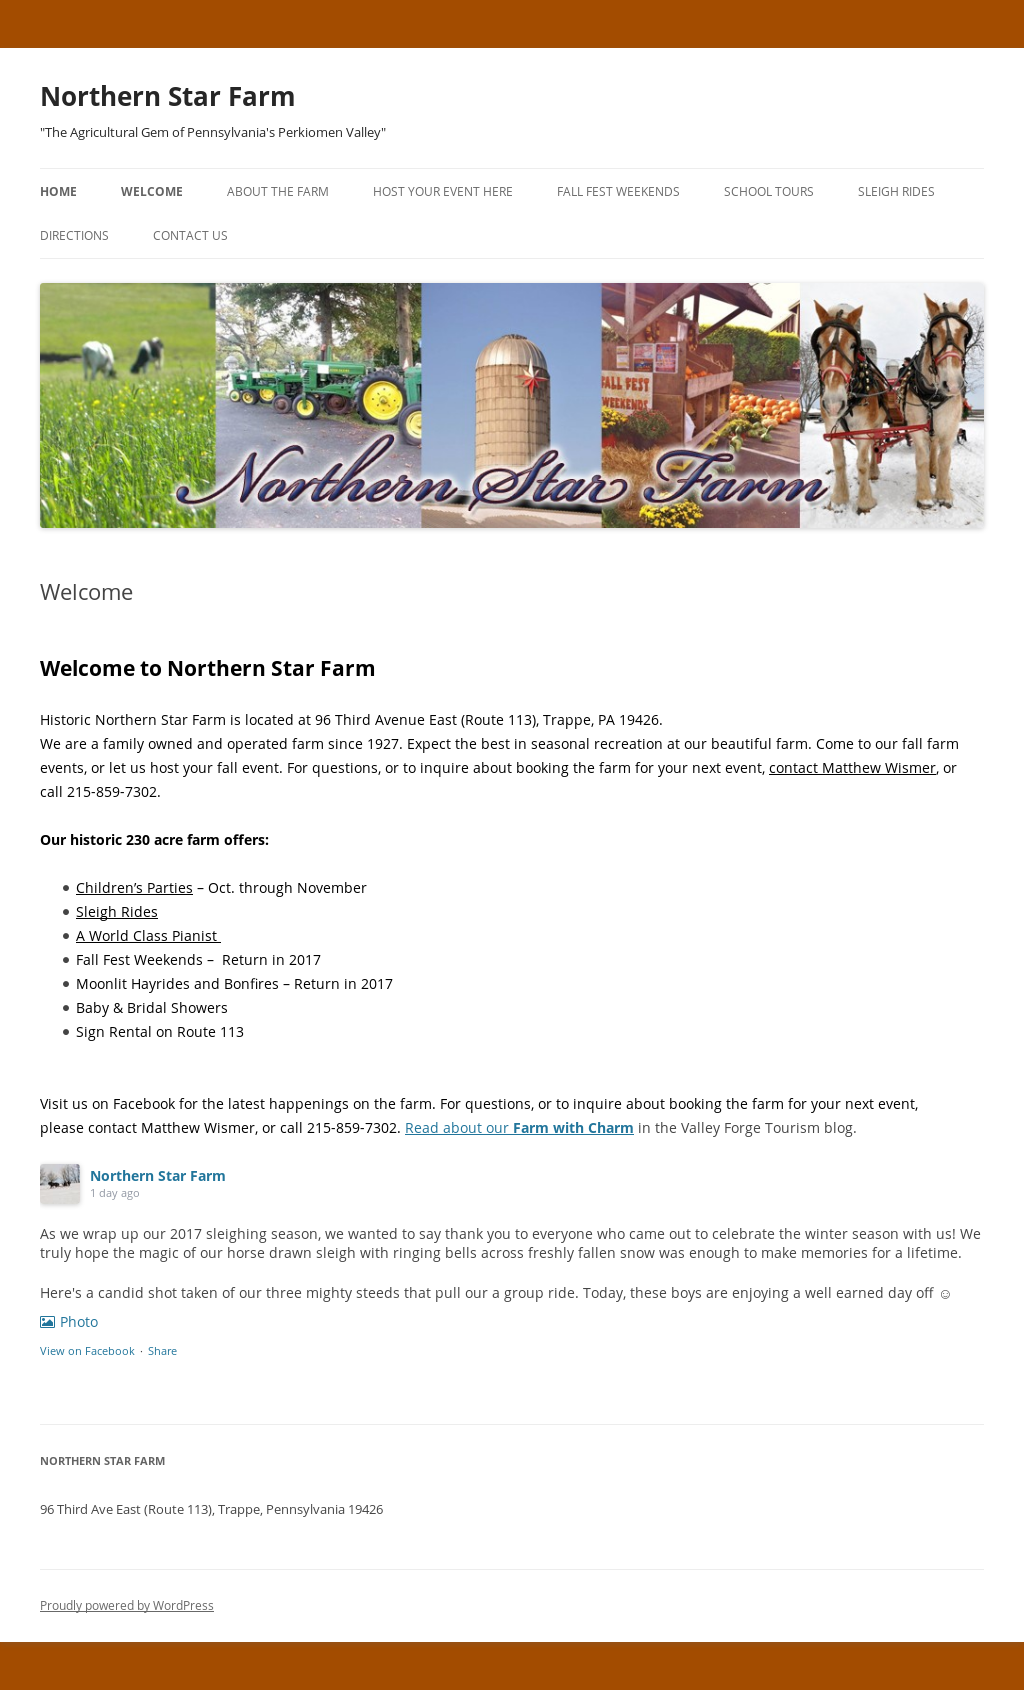 Northern Star Farm Competitors, Revenue and Employees